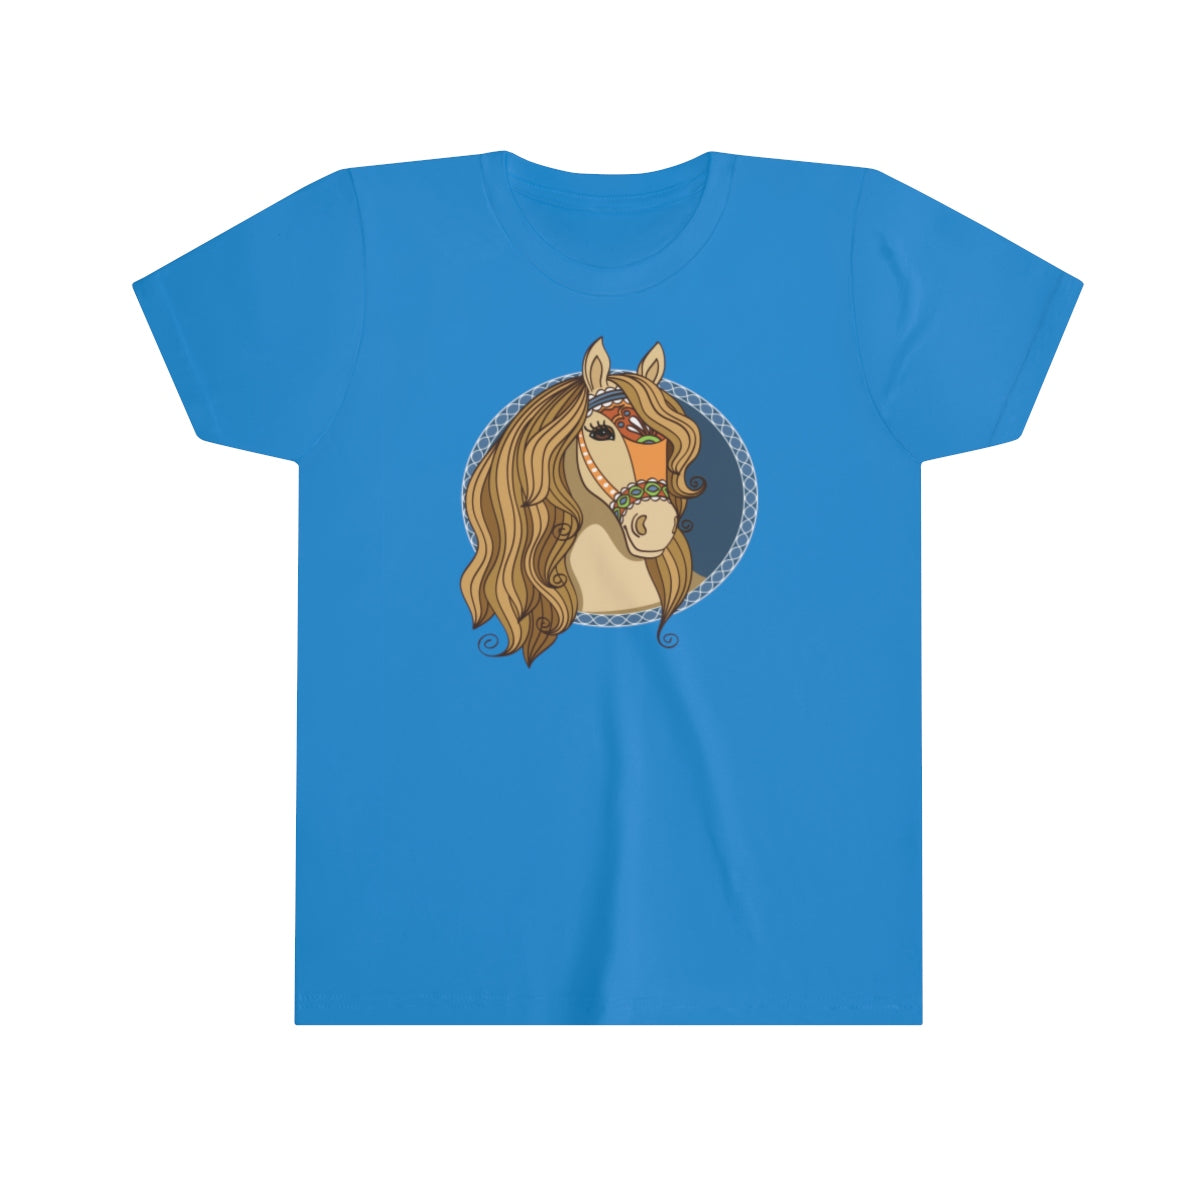 Horse Girls Youth Princess Custom Handmade T-shirt - mysterynb